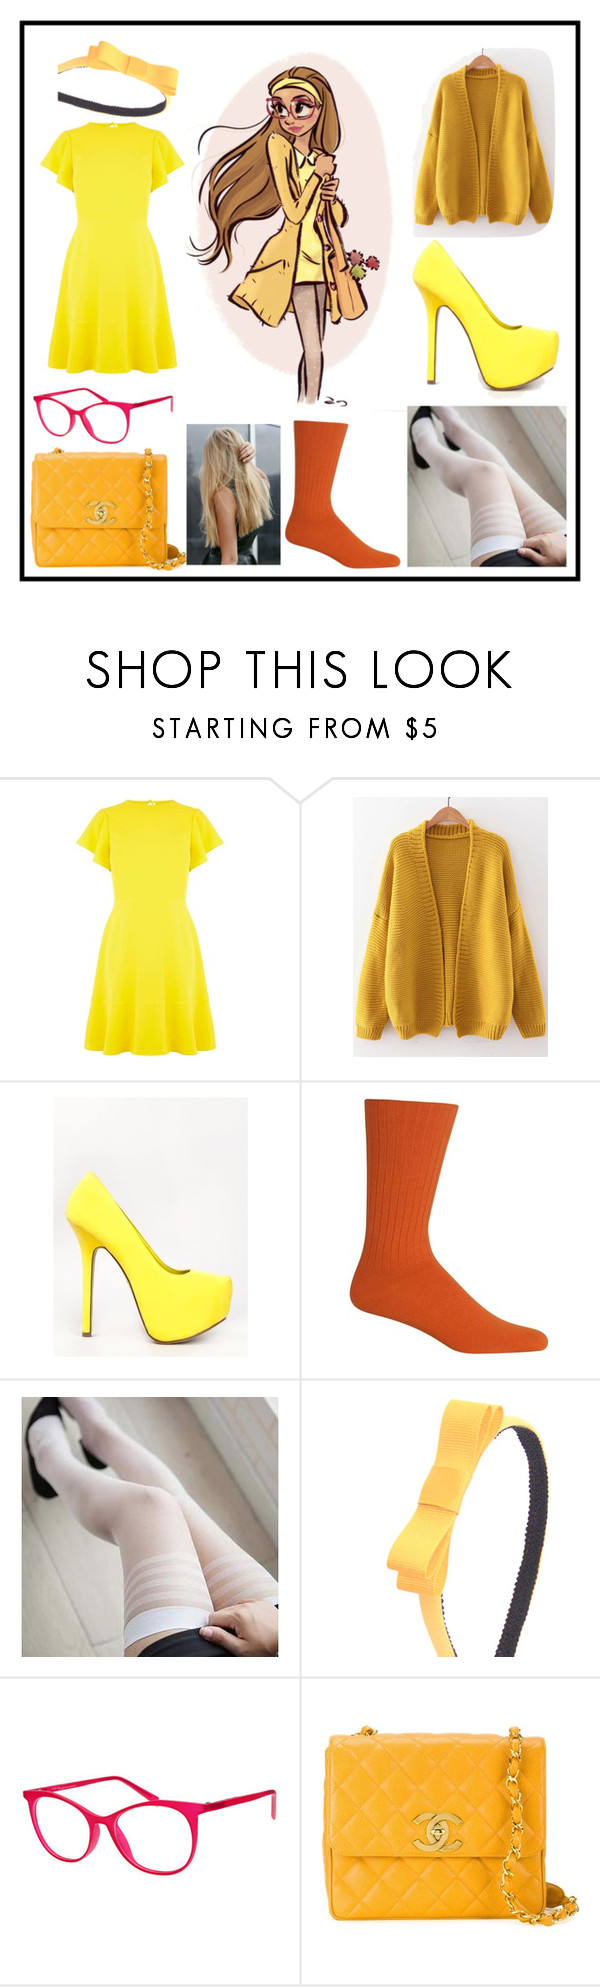 """""""Honey Lemon"""" by bindisydney ❤ liked on Polyvore featuring Disney, Warehouse, WithChic, Breckelle's, Chaps, Italia Independent, Chanel, BigHero6 and blondedisney"""